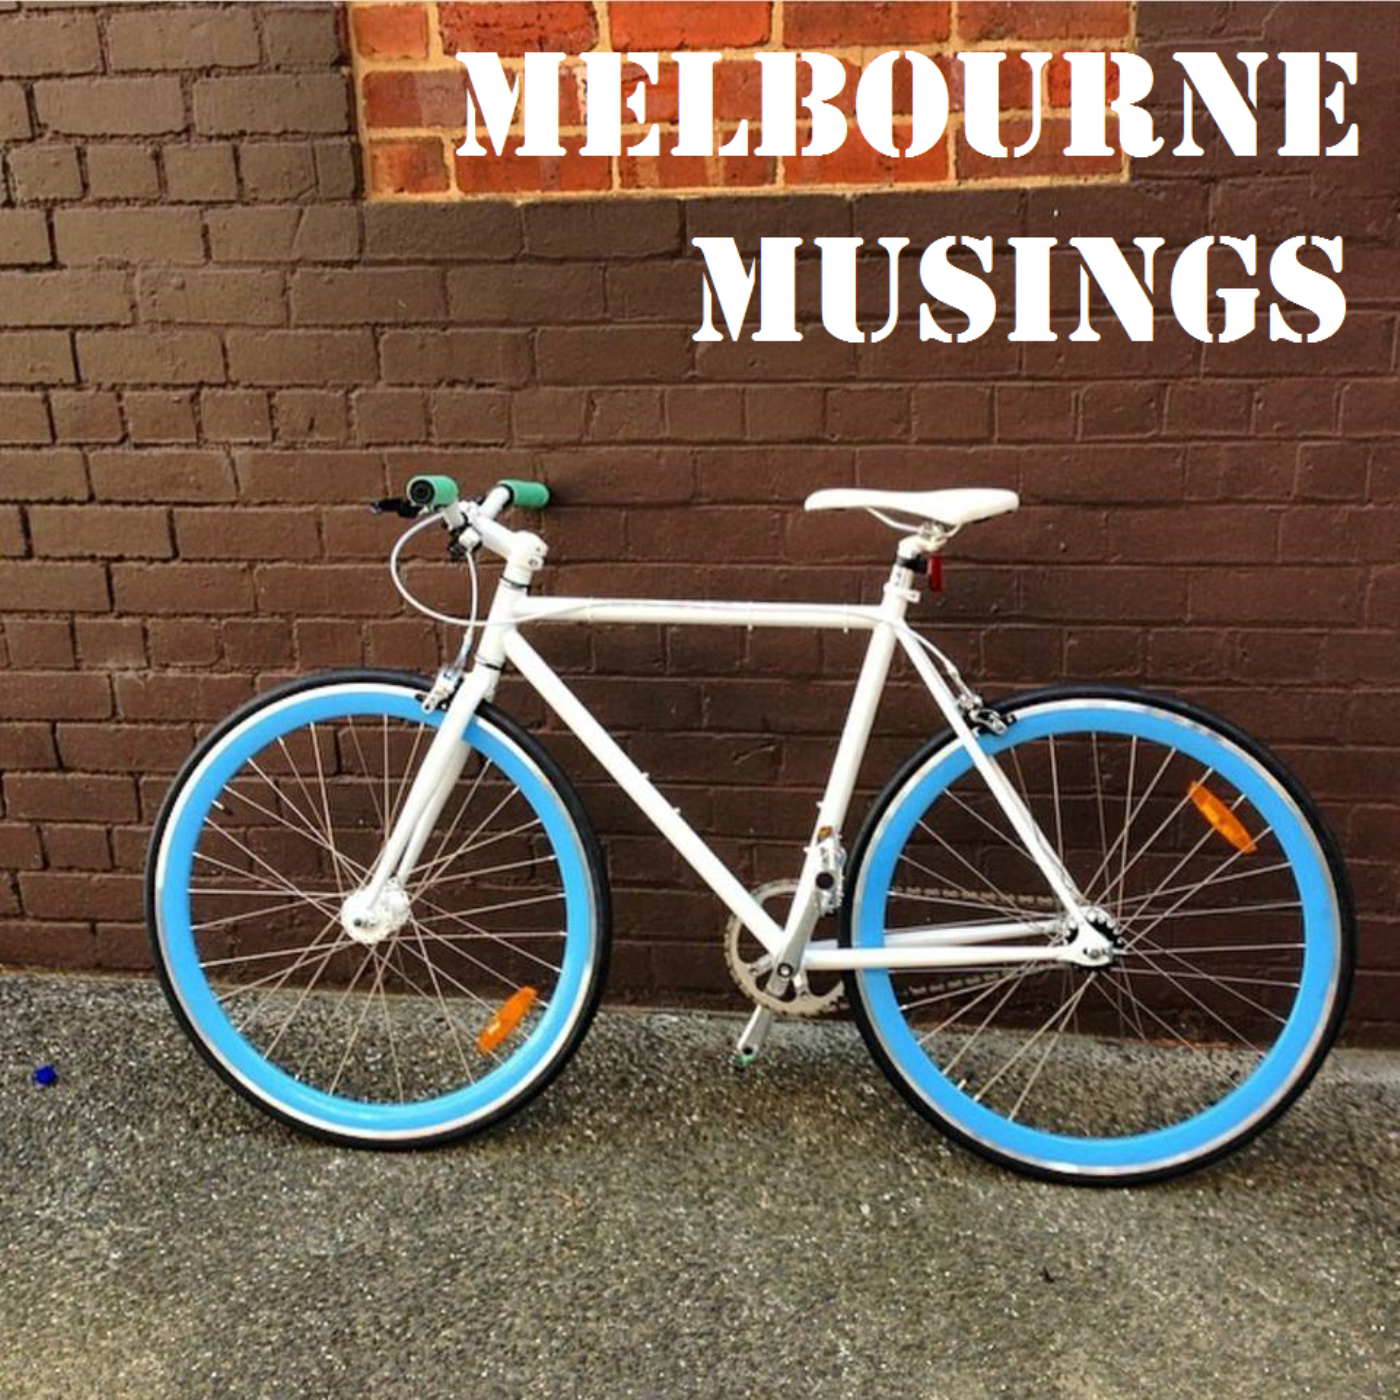 Melbourne Musings Episode 80 show art